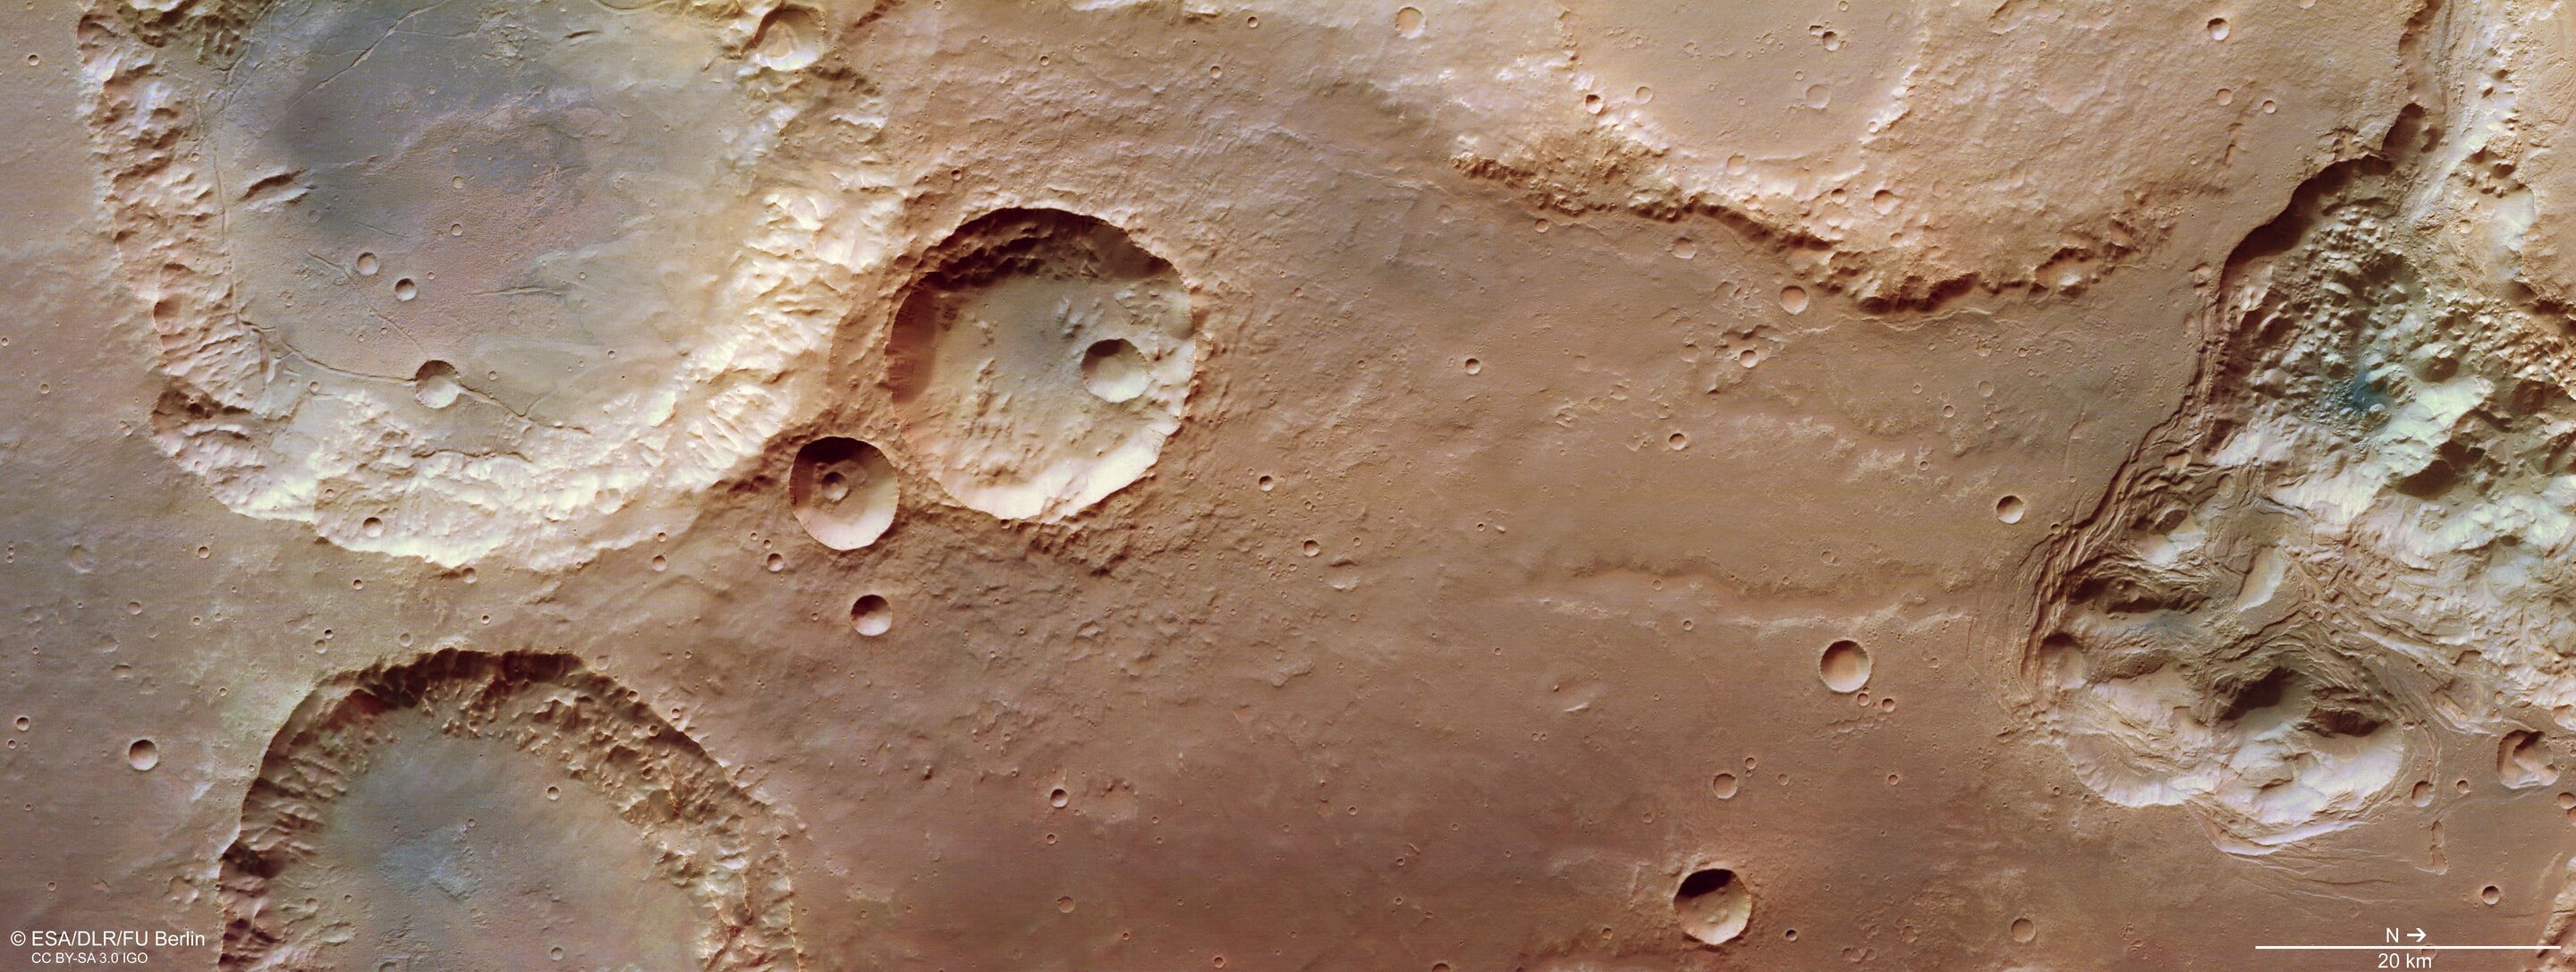 Craters and collapse on Mars